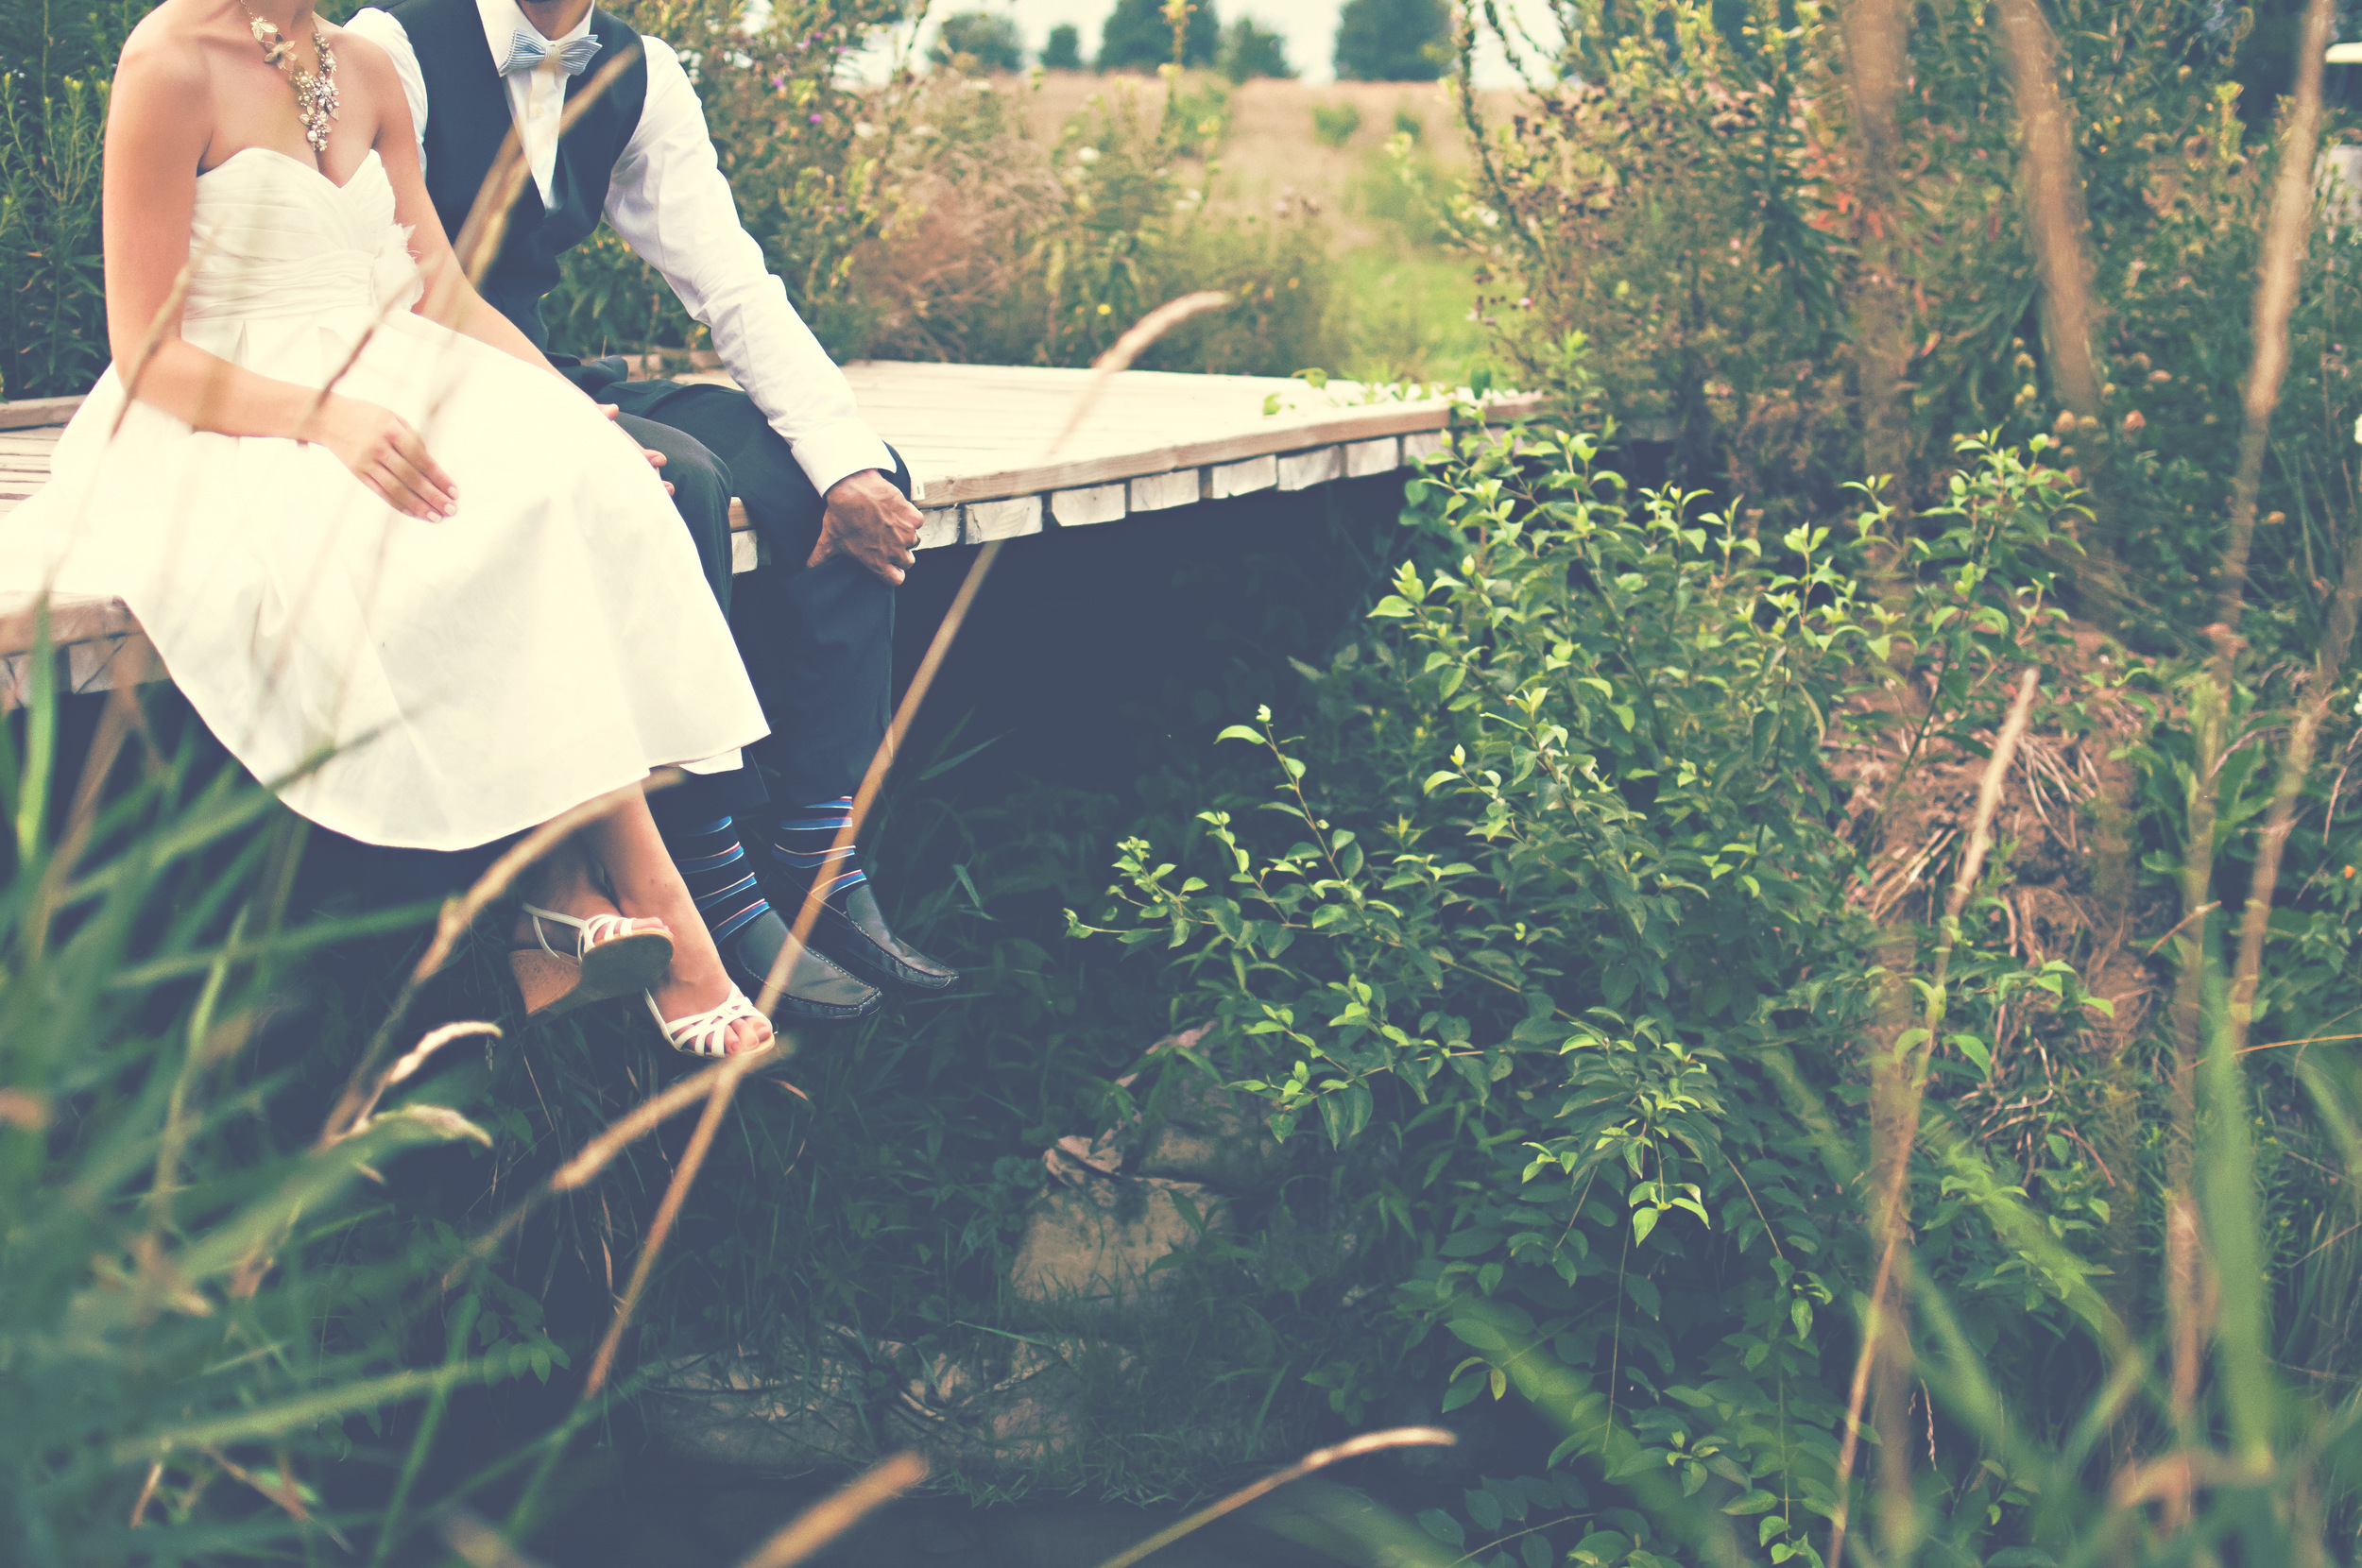 An outdoor wedding can provide a wonderful backdrop for your Southern wedding.